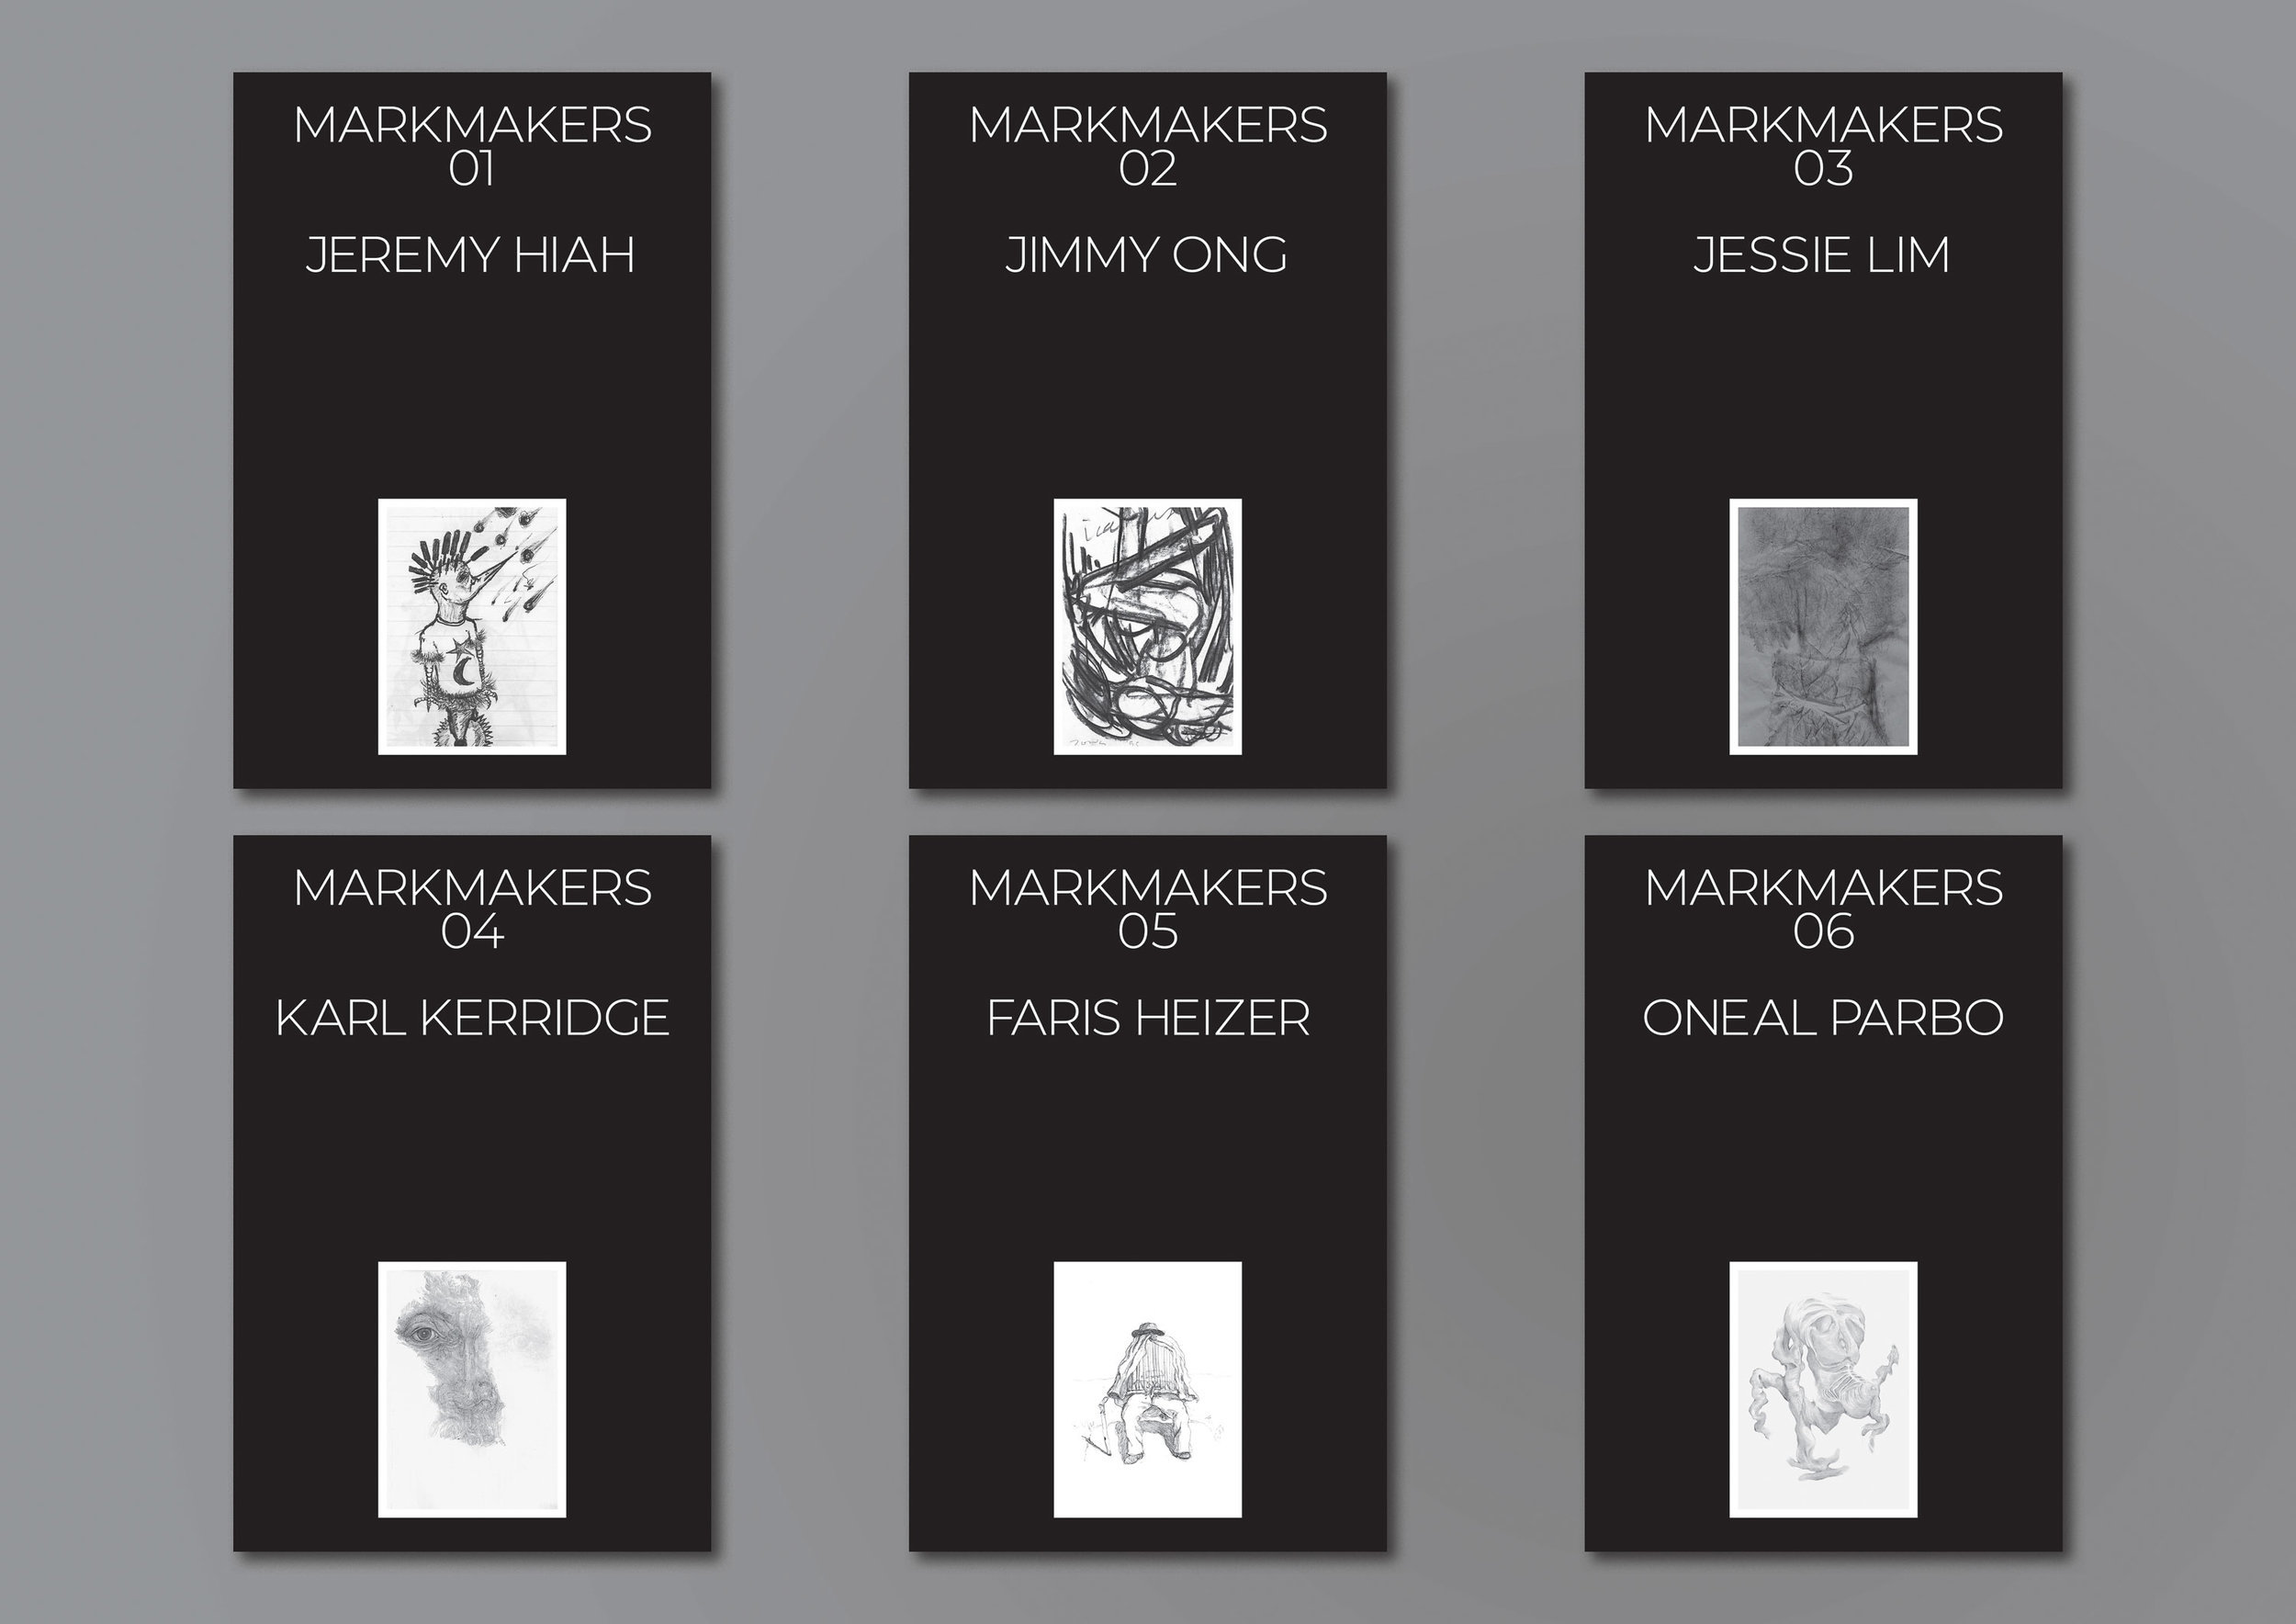 'MARKMAKERS' books series, 2019. Image courtesy of Coda Culture.